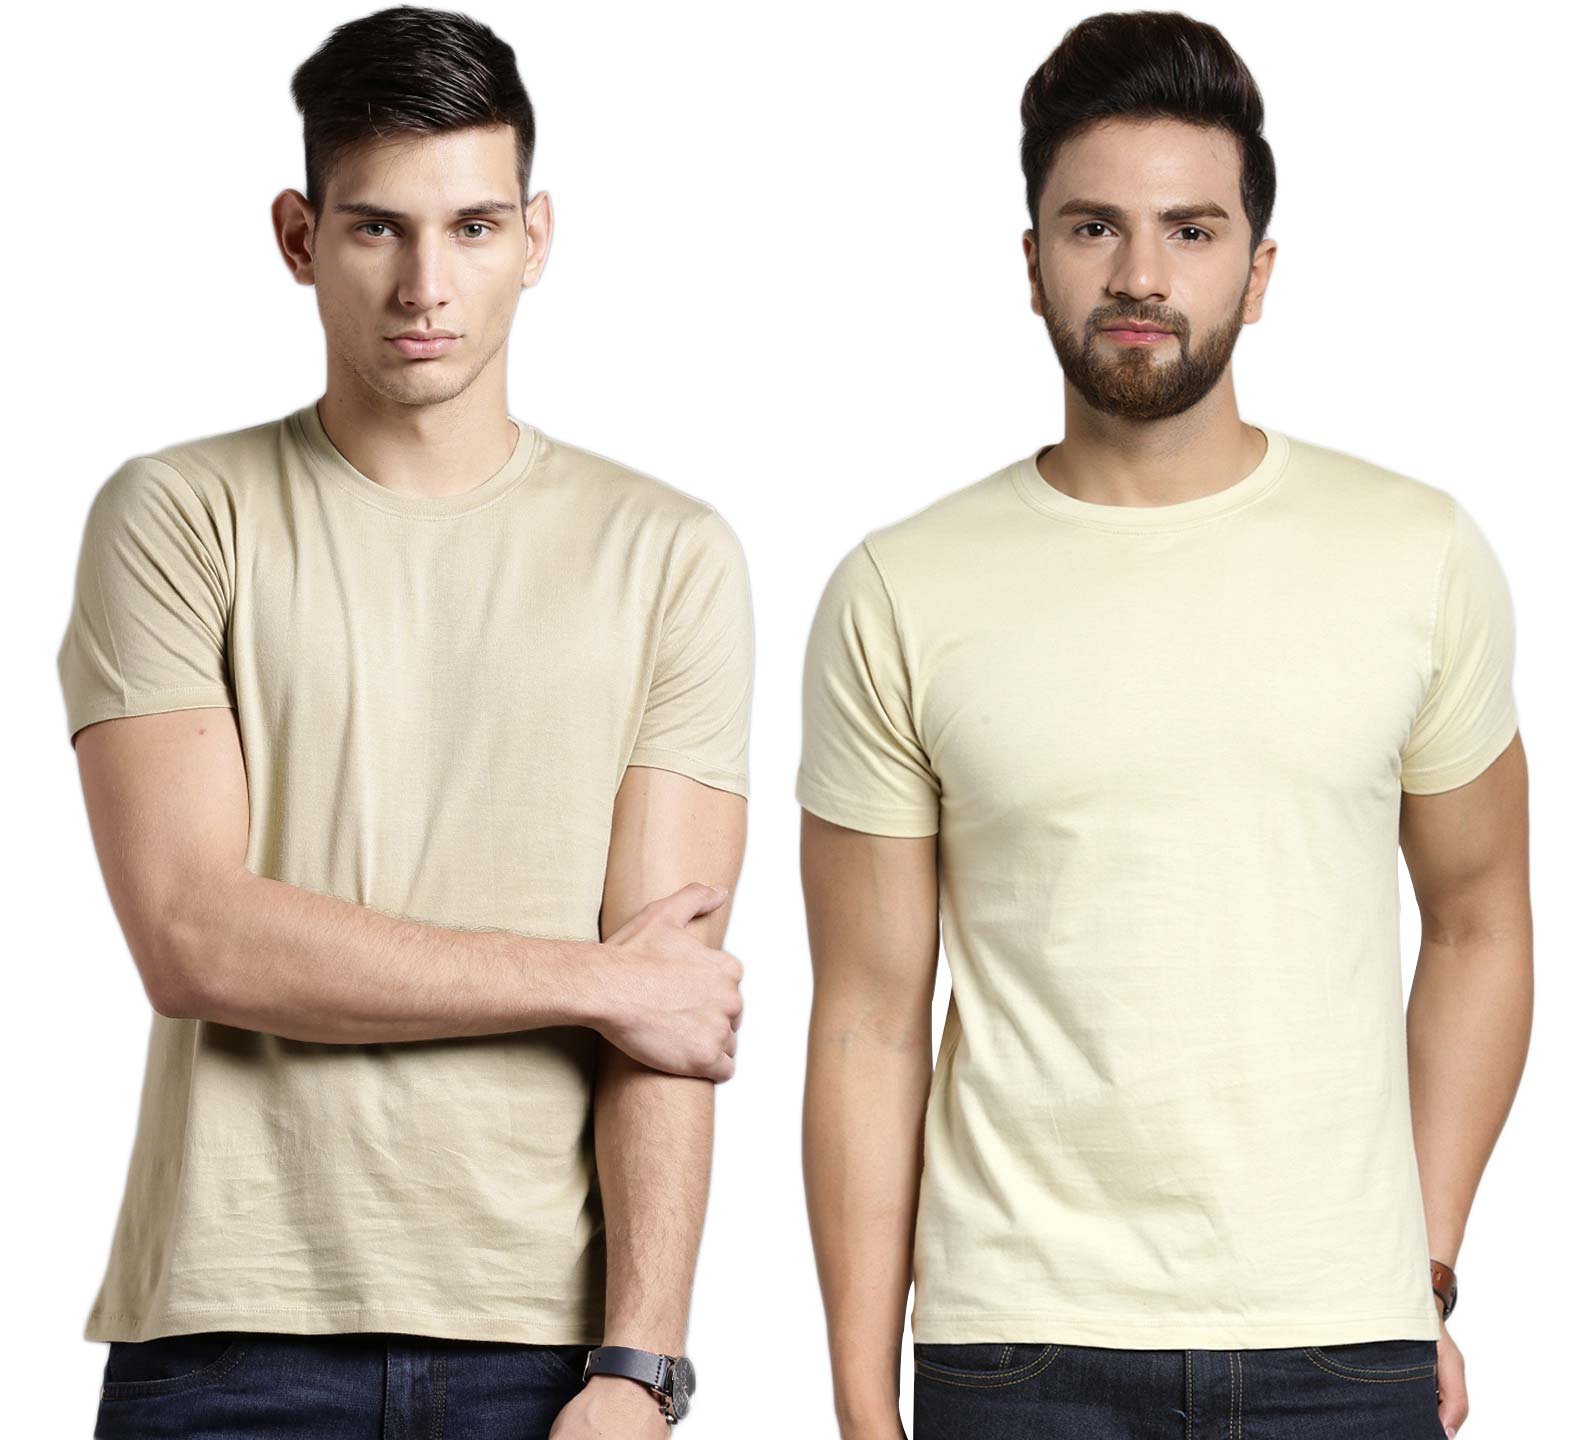 Pavis Polycotton Combo Of 2 T Shirts For Men